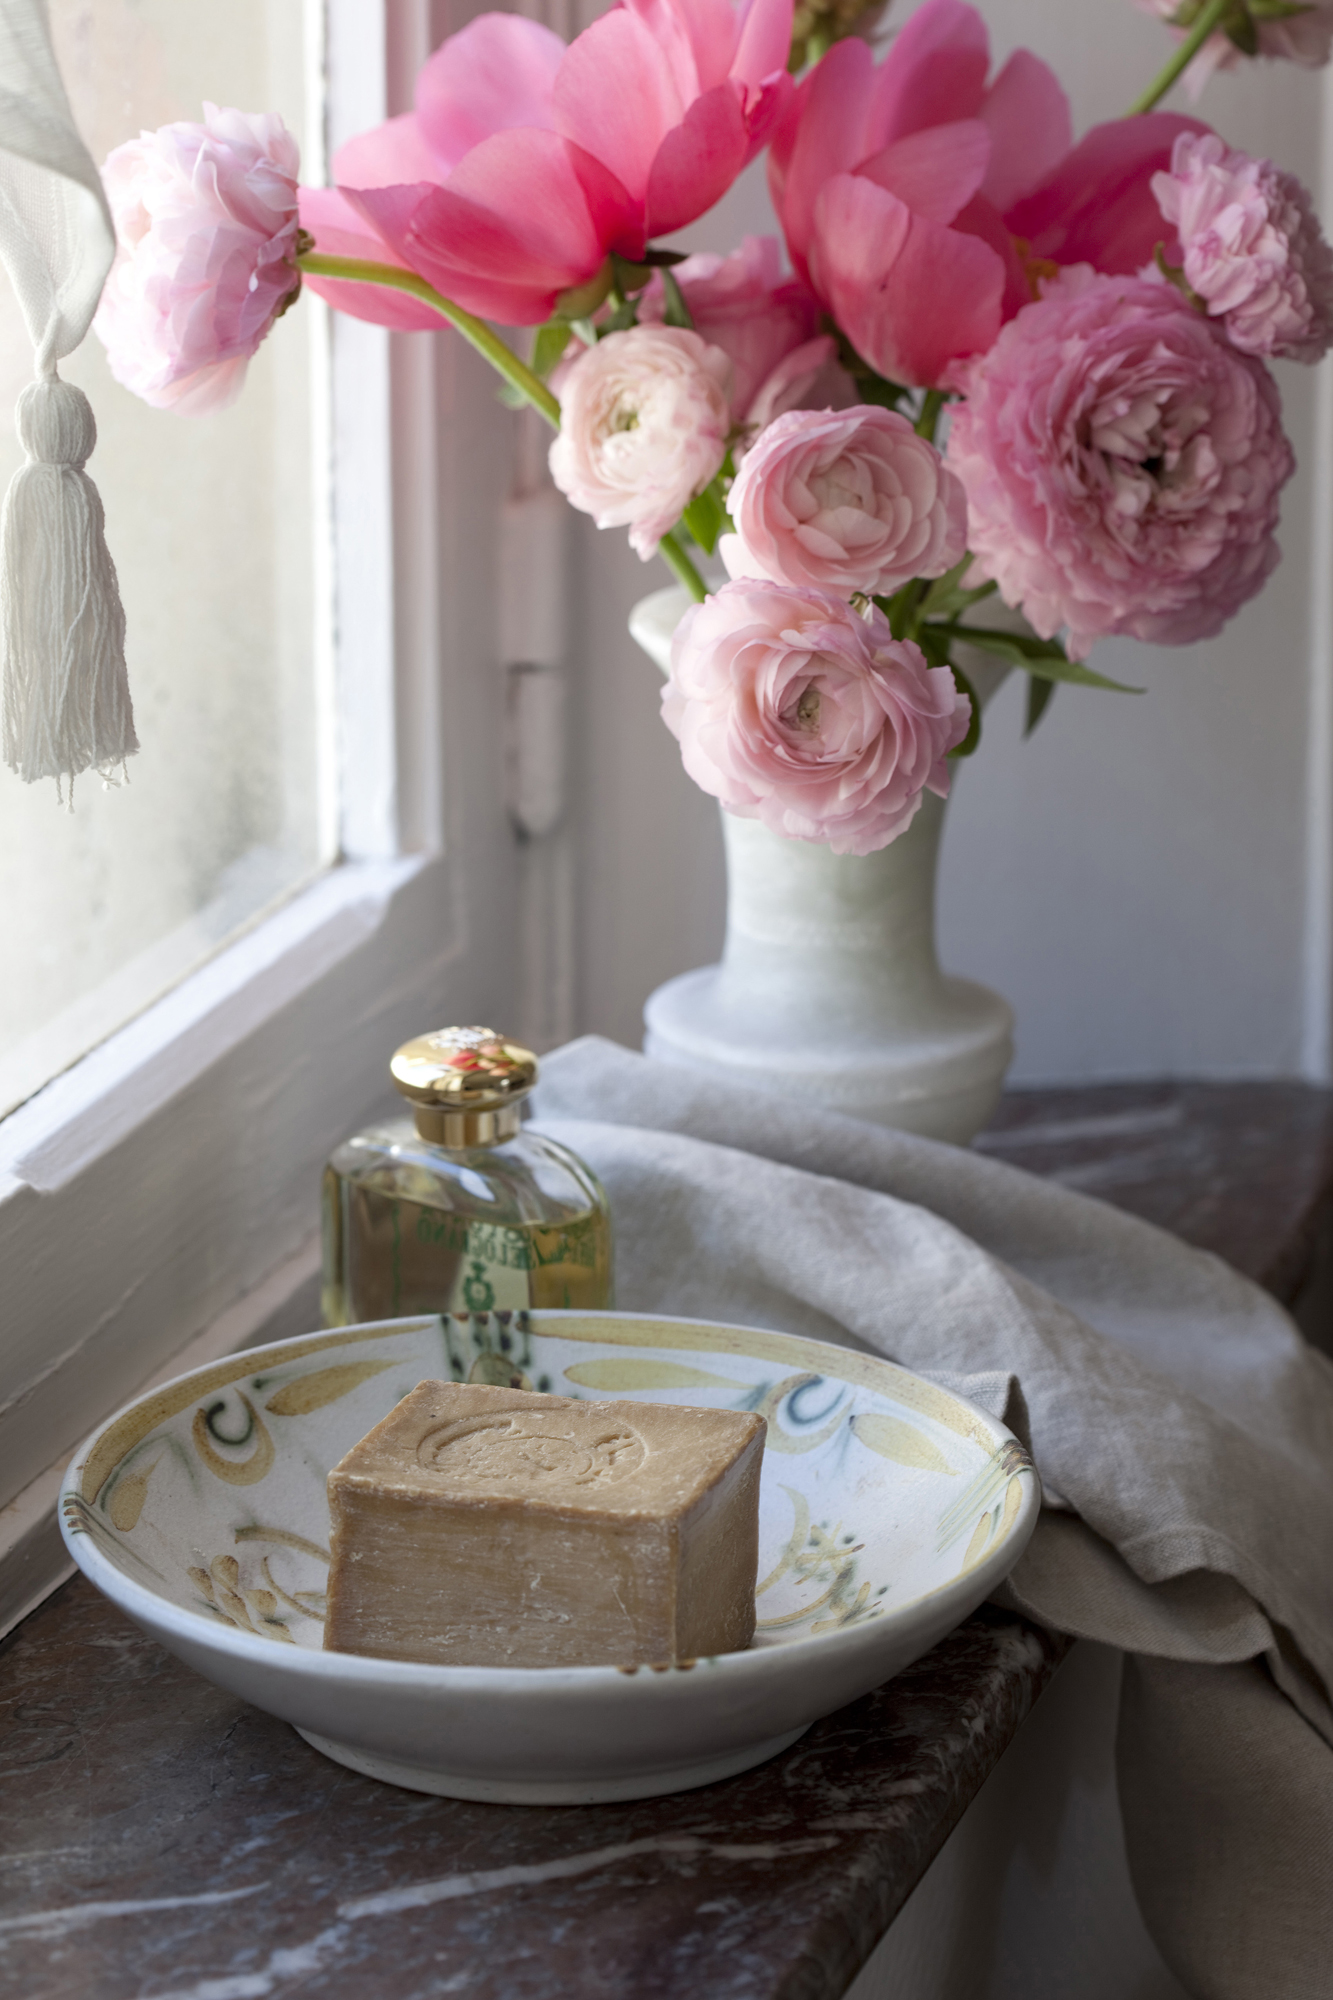 Vintage soap dish and flowers in a small bathroom